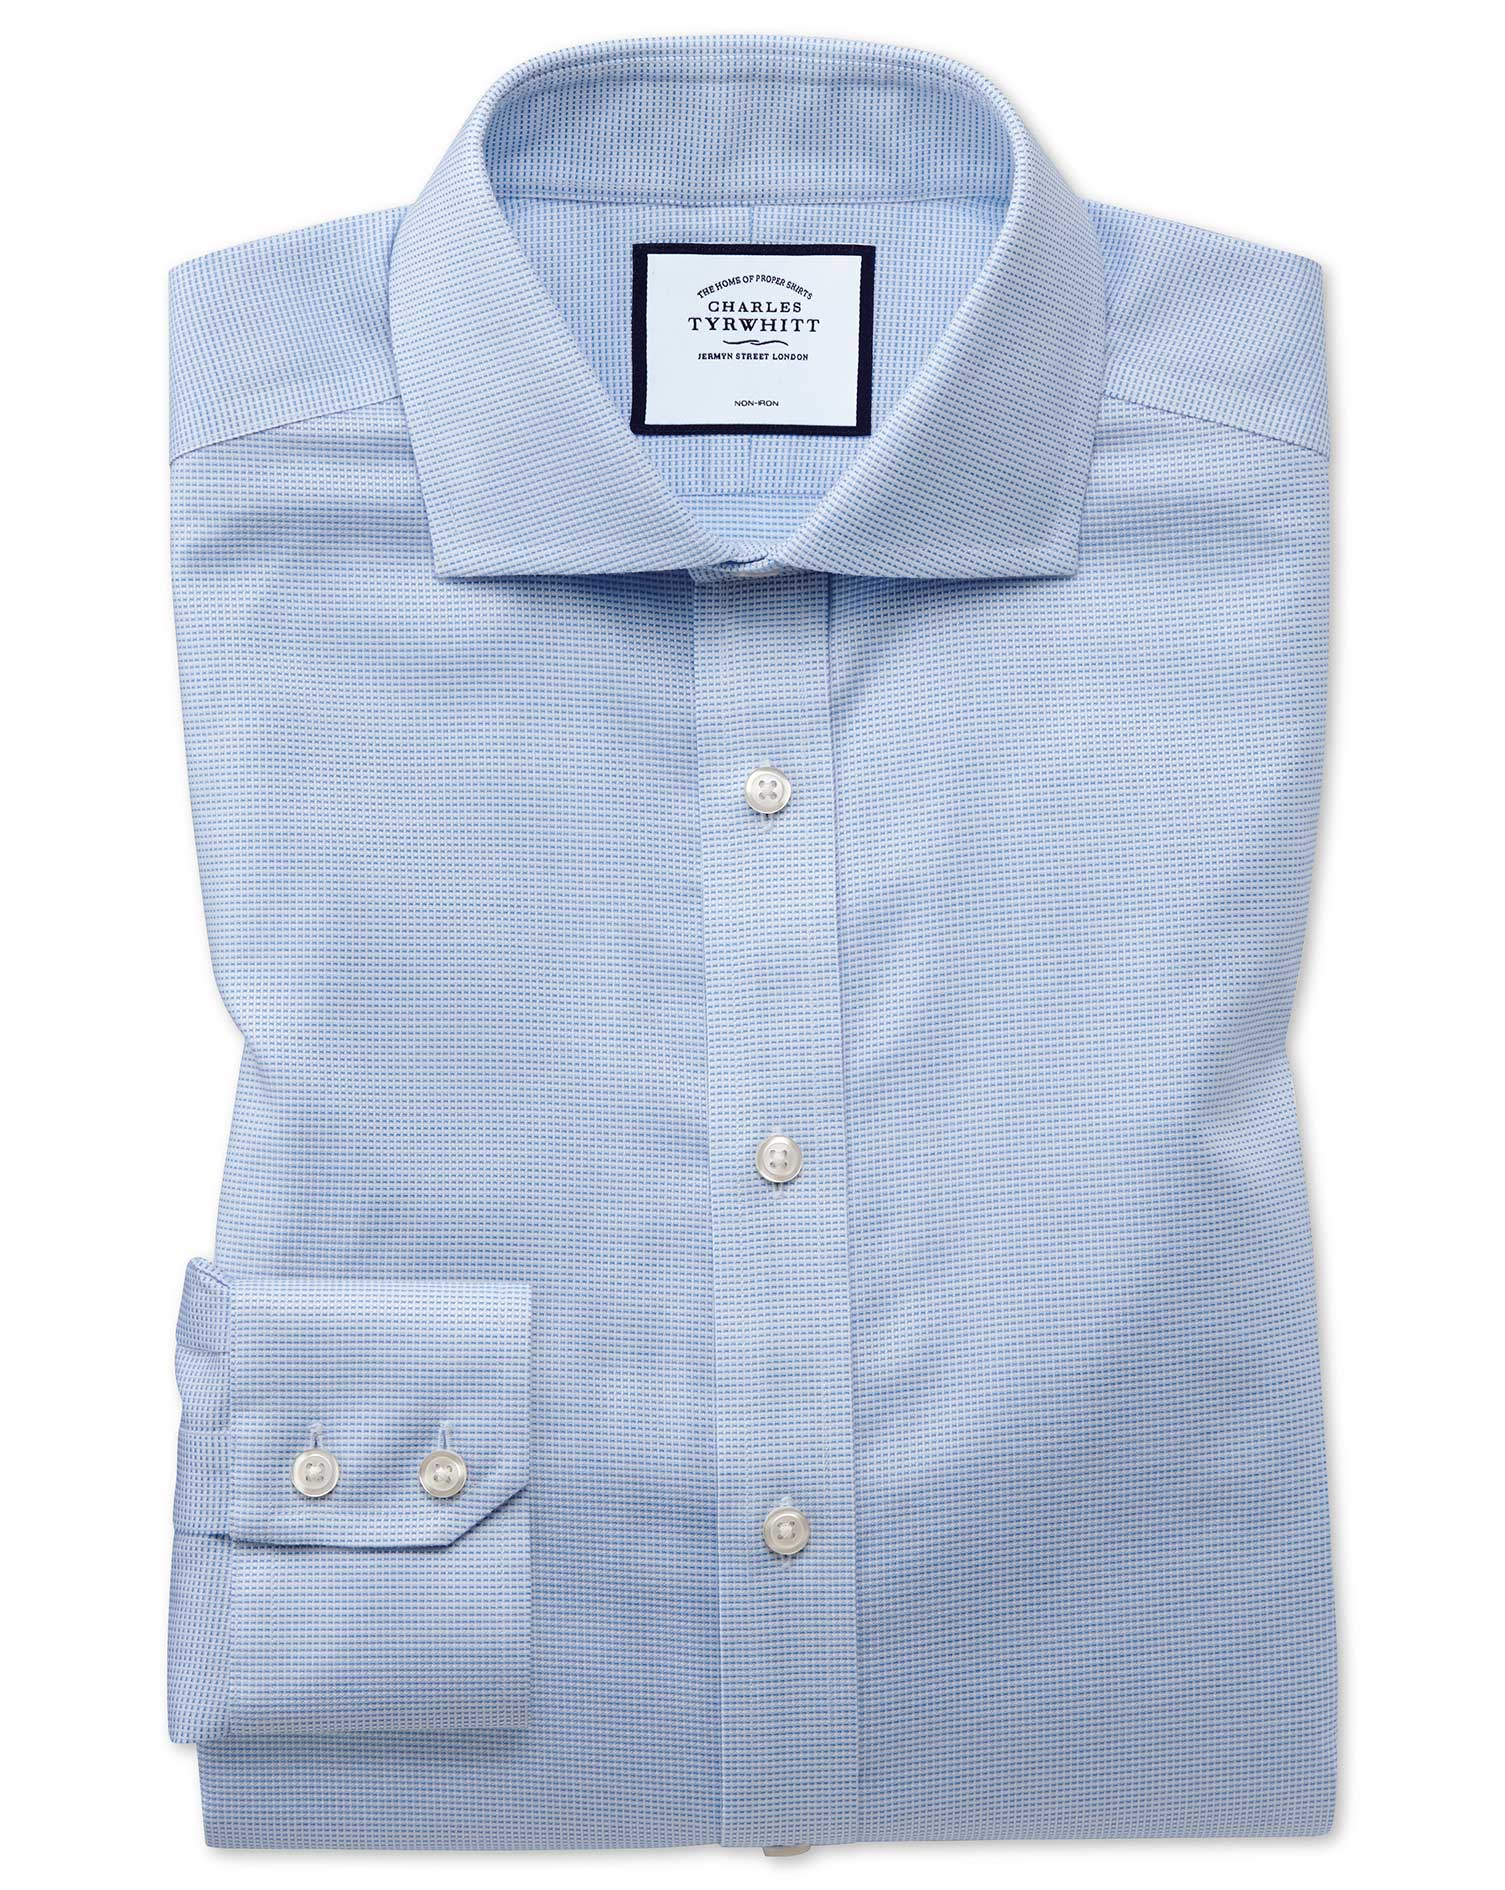 Extra Slim Fit Non-Iron Cotton Stretch Oxford Sky Blue Formal Shirt Single Cuff Size 15.5/32 by Char